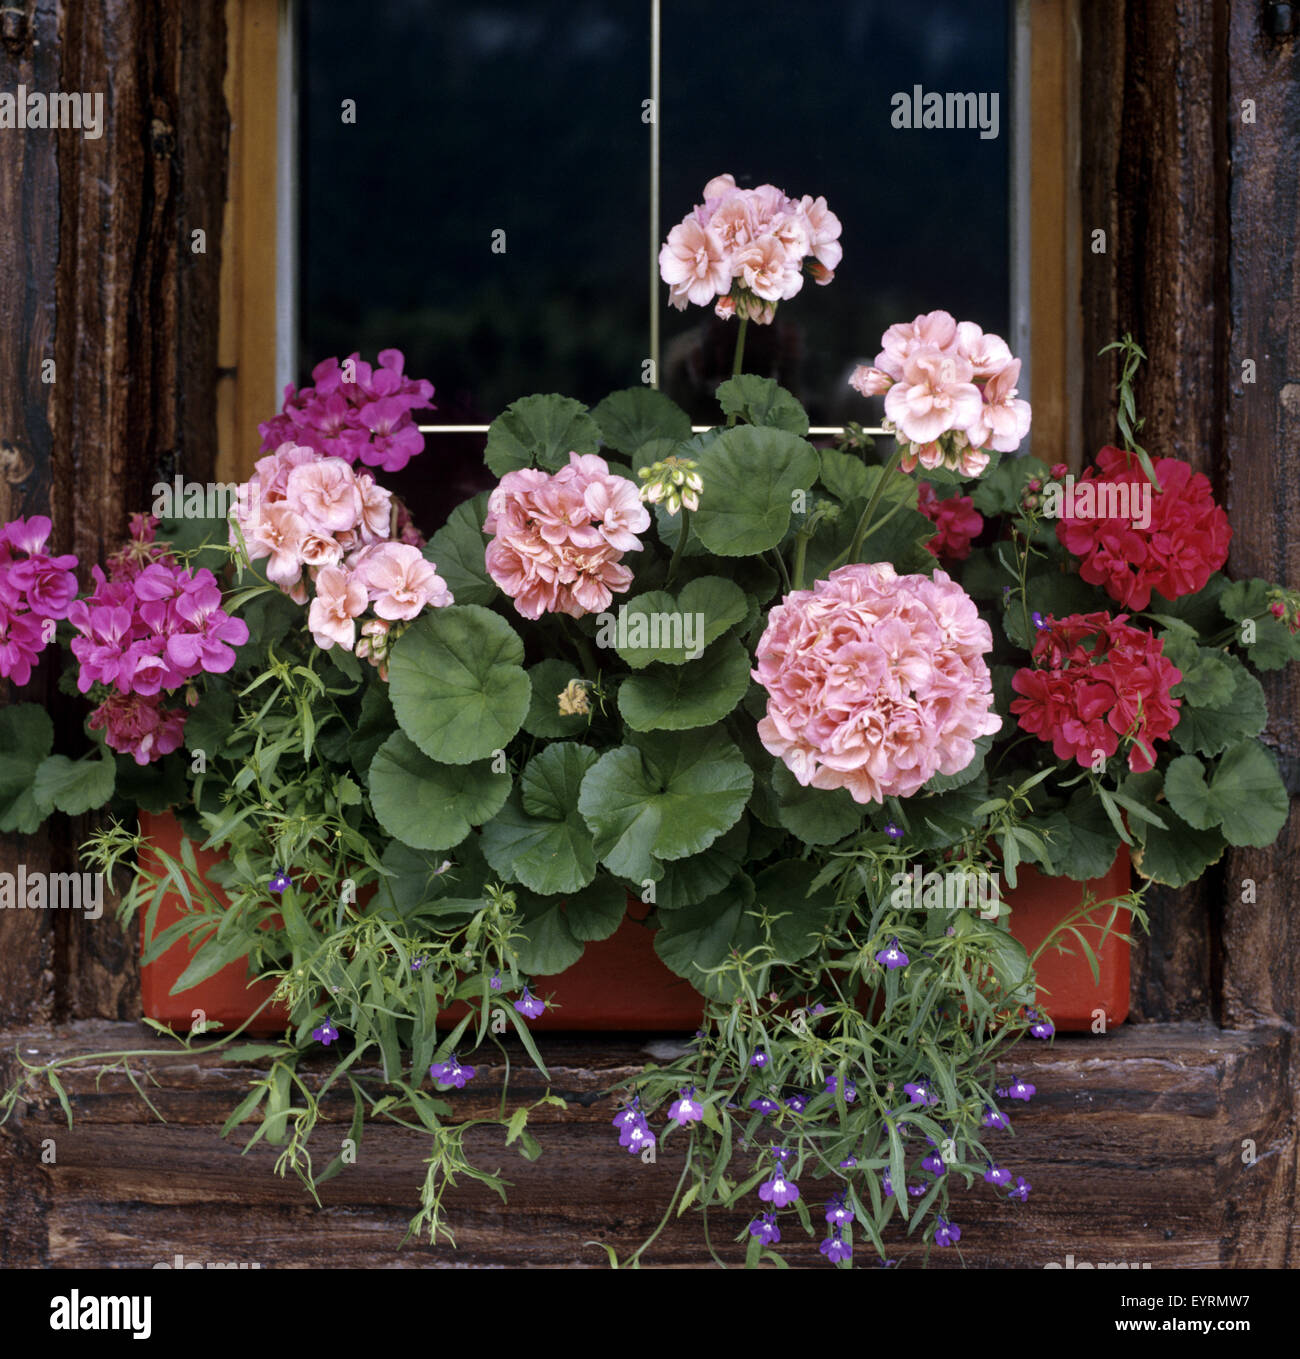 blumenfenster fenster mit blumen balkonblumen blumen auf terrasse stock photo royalty free. Black Bedroom Furniture Sets. Home Design Ideas